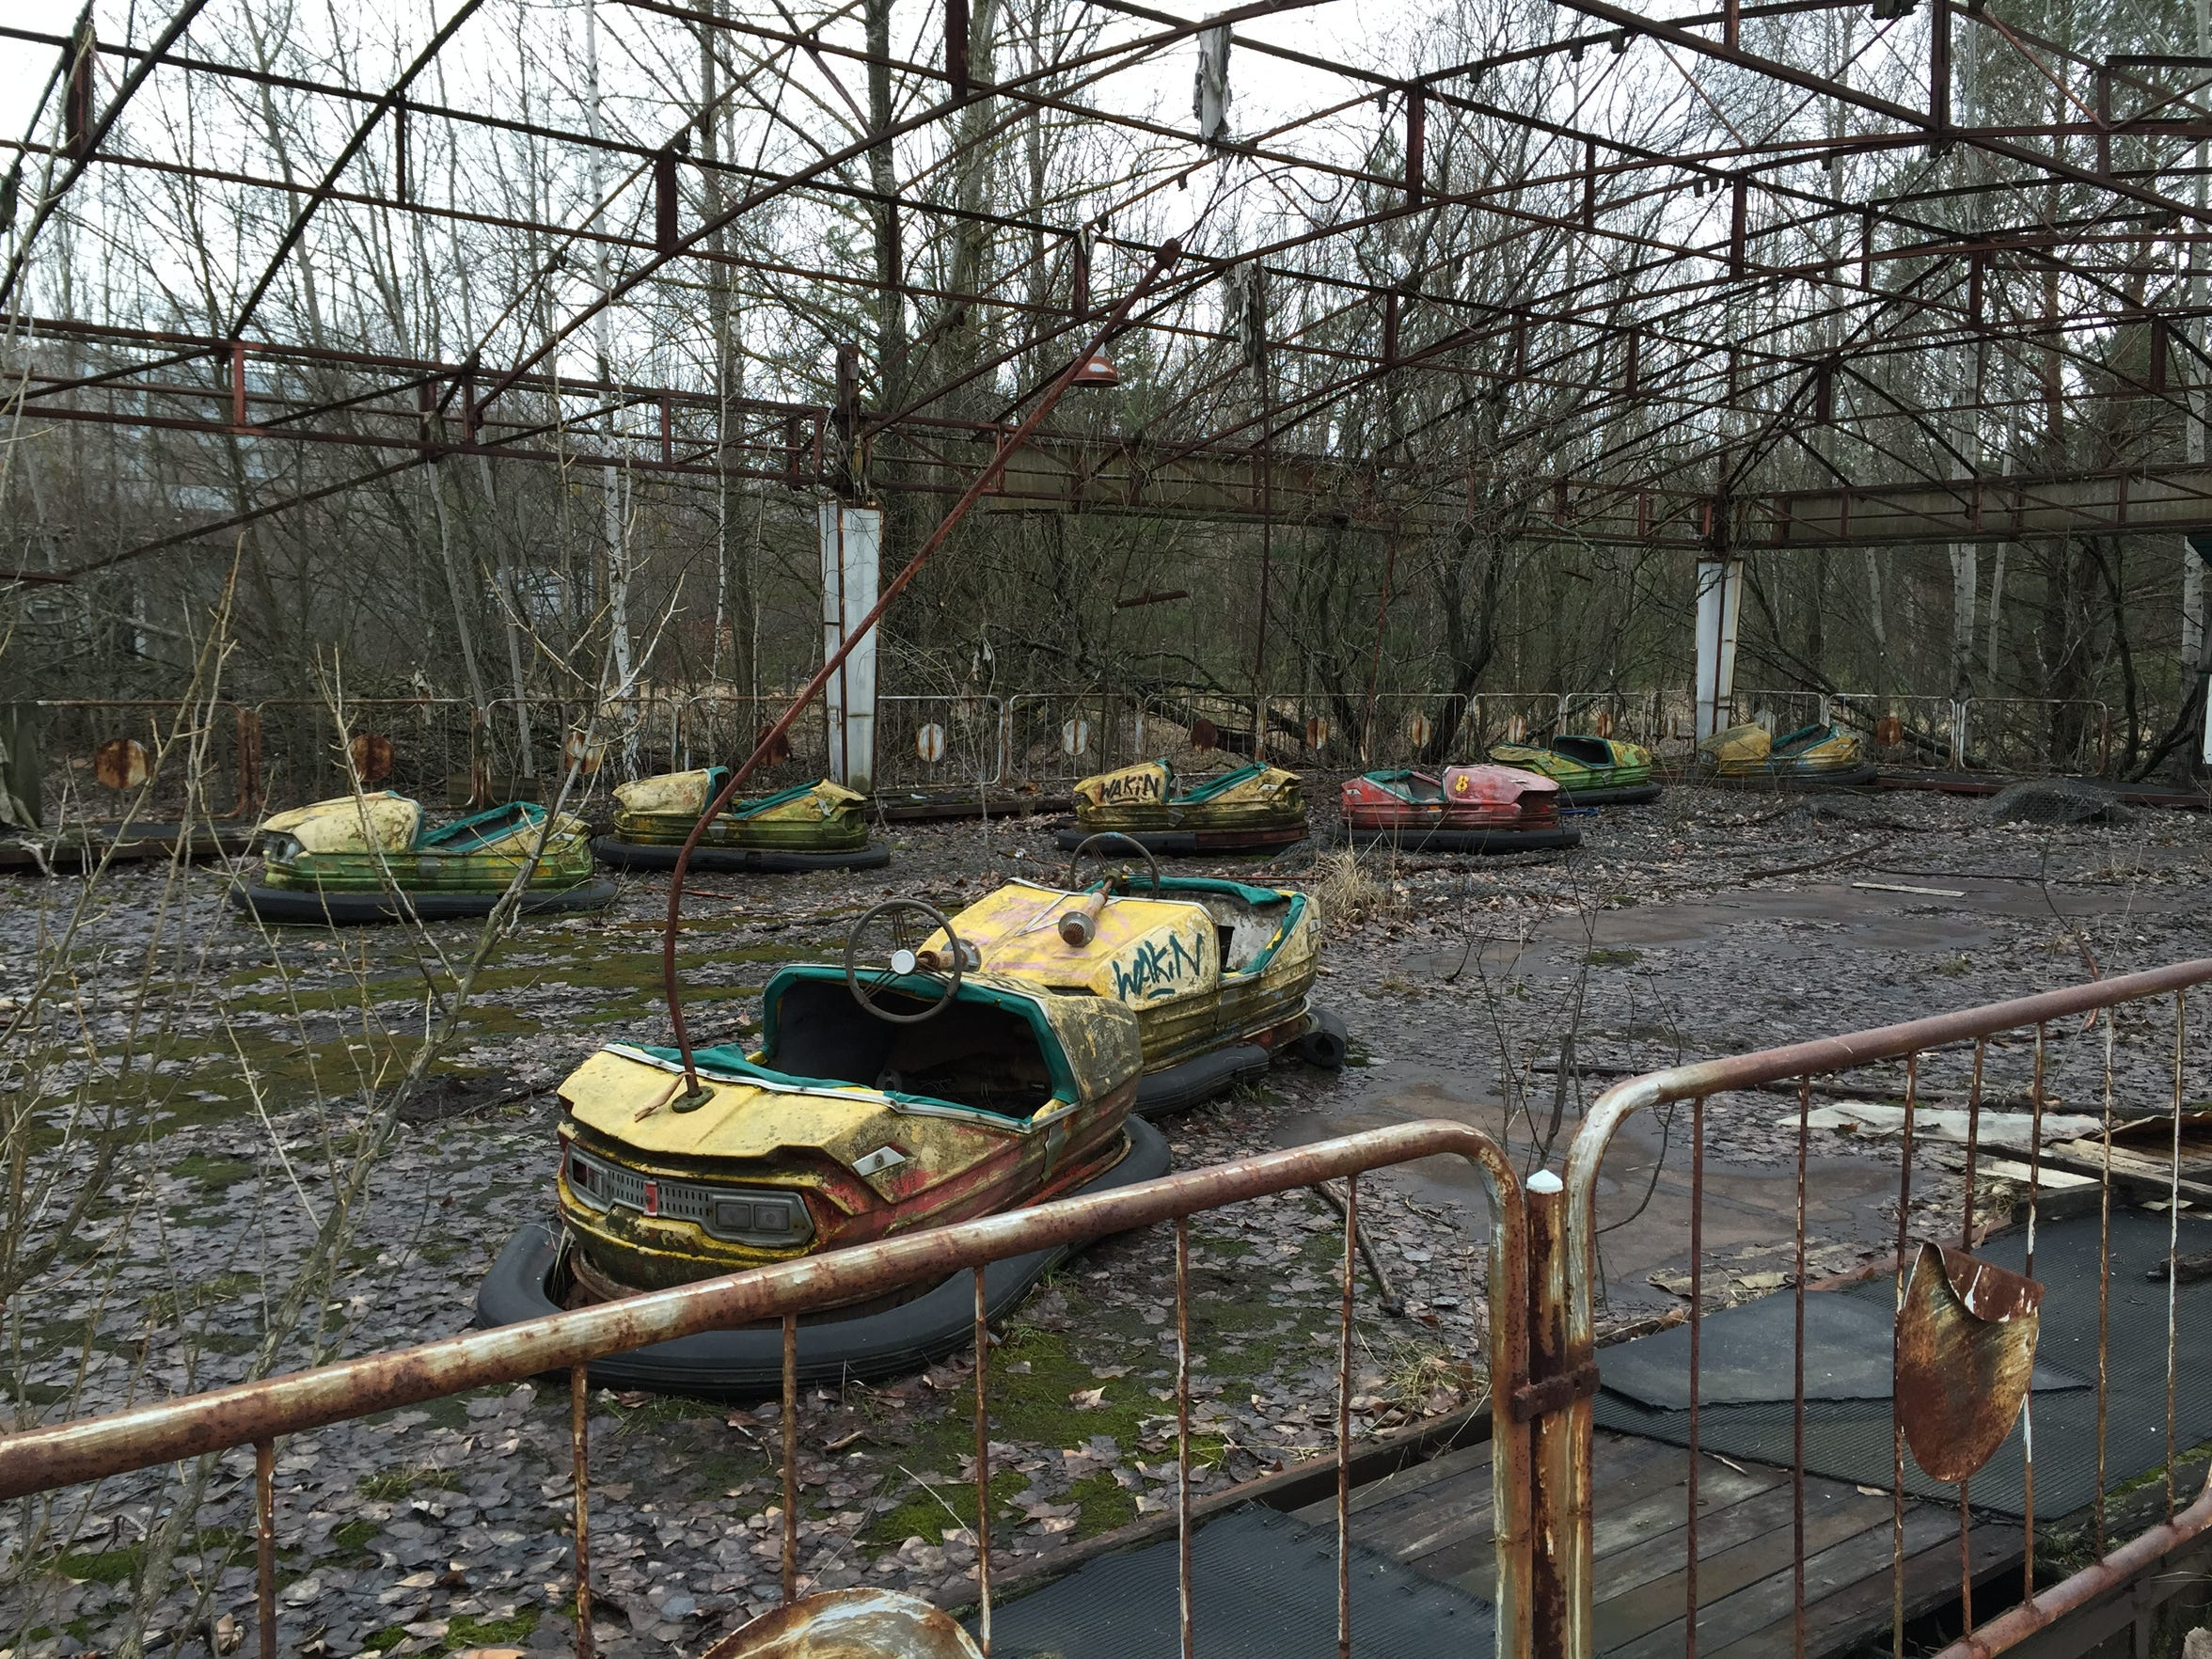 Rusting bumper cars that were part of an amusement park that was slated to open a few days after the Chernobyl nuclear disaster on April 26, 1986, are seen in the Exclusion Zone on March 2, 2016.